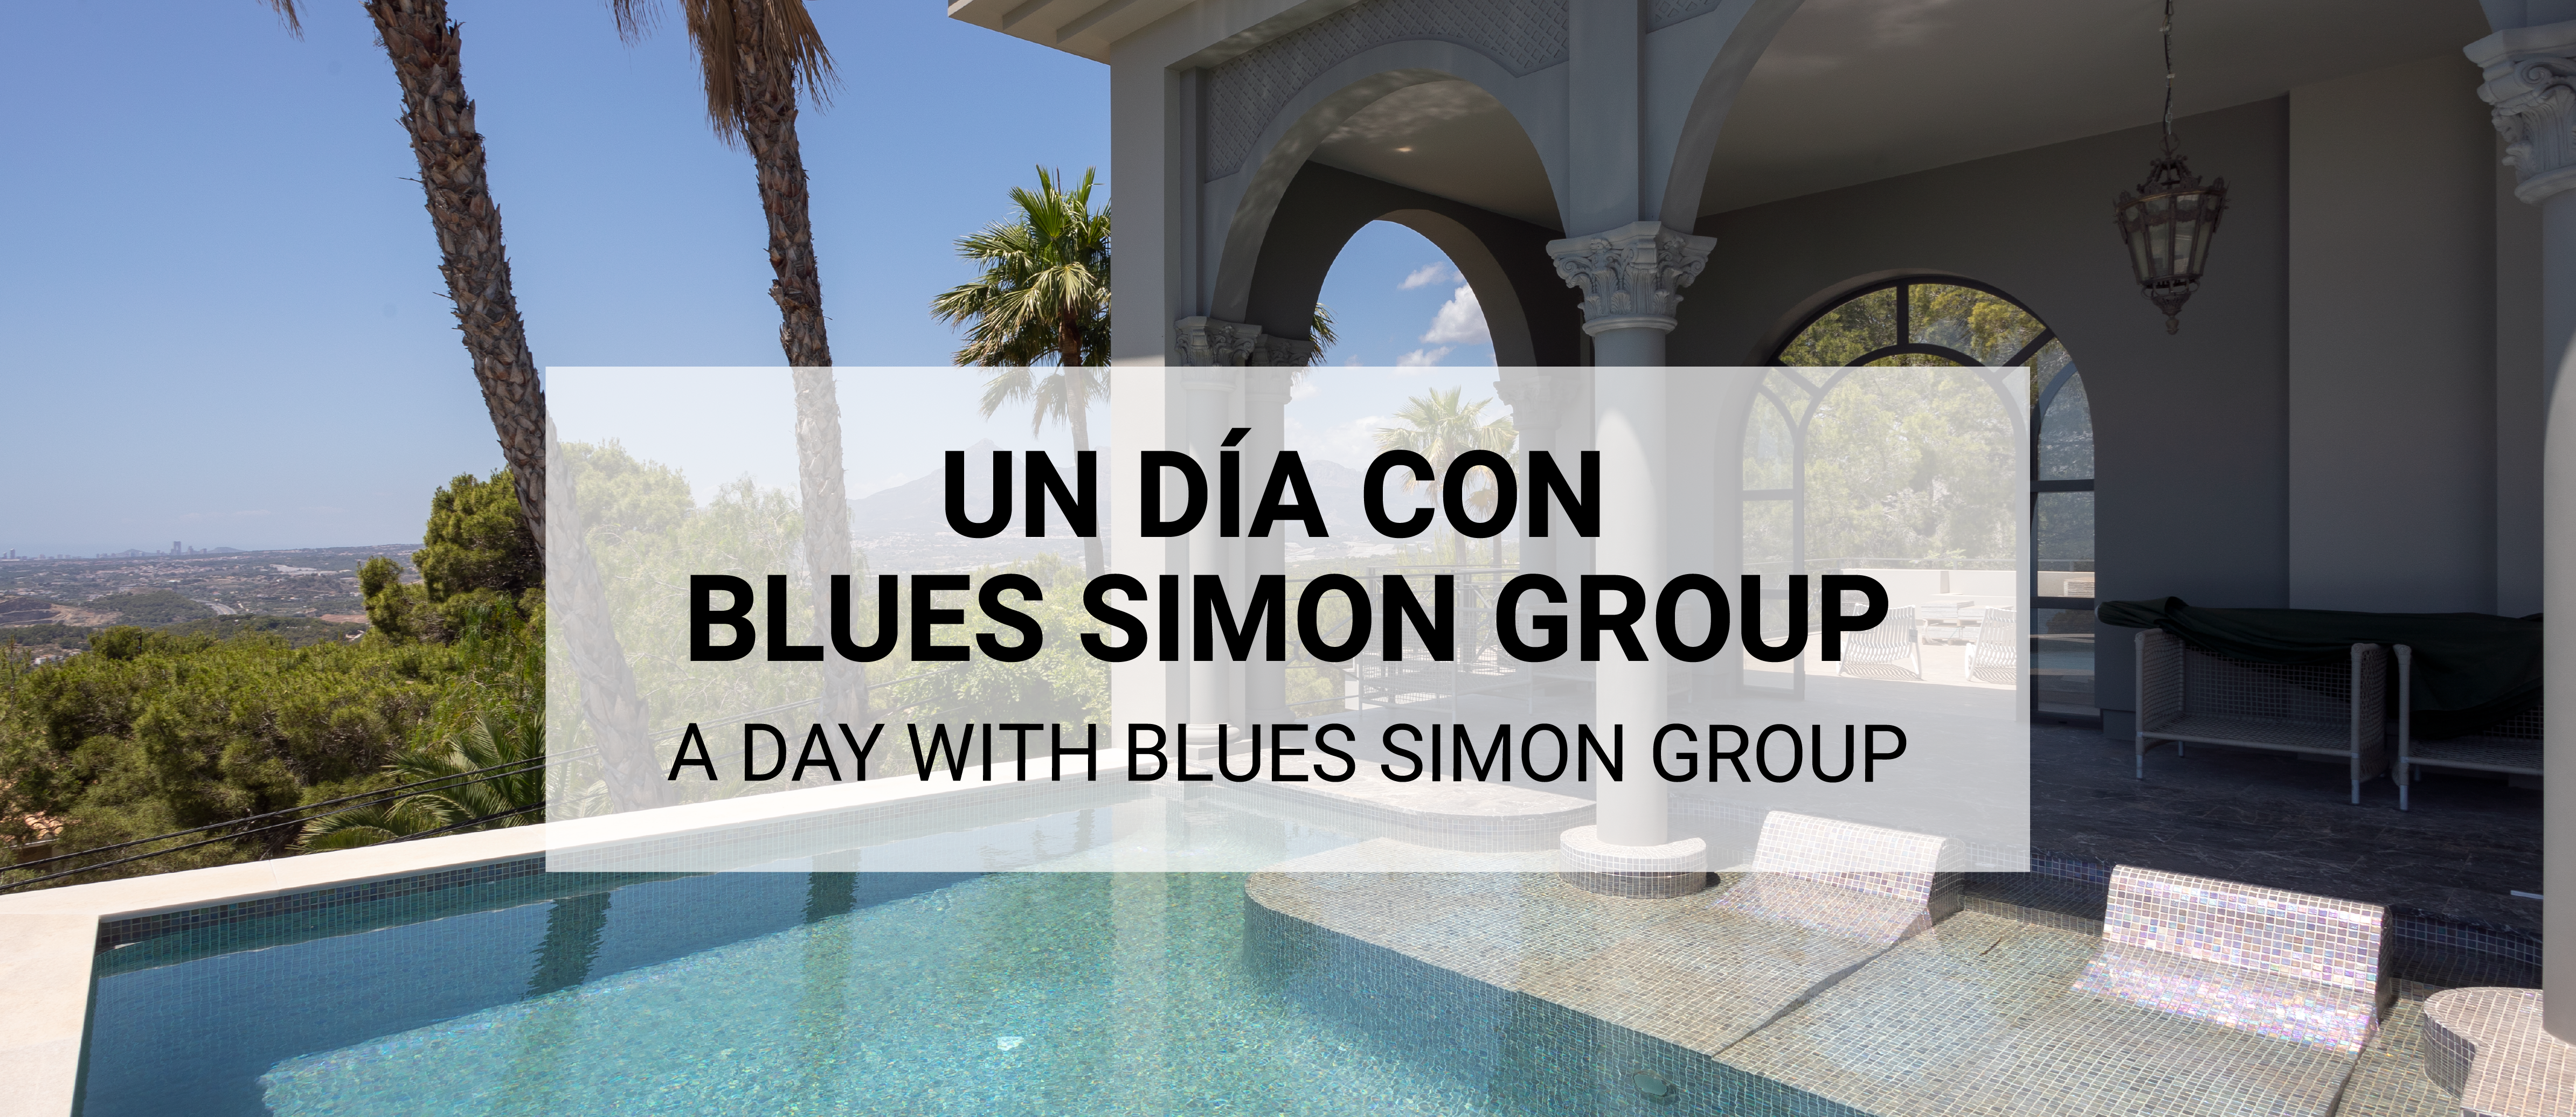 Closeness to customers. A day with Blues Simon Group